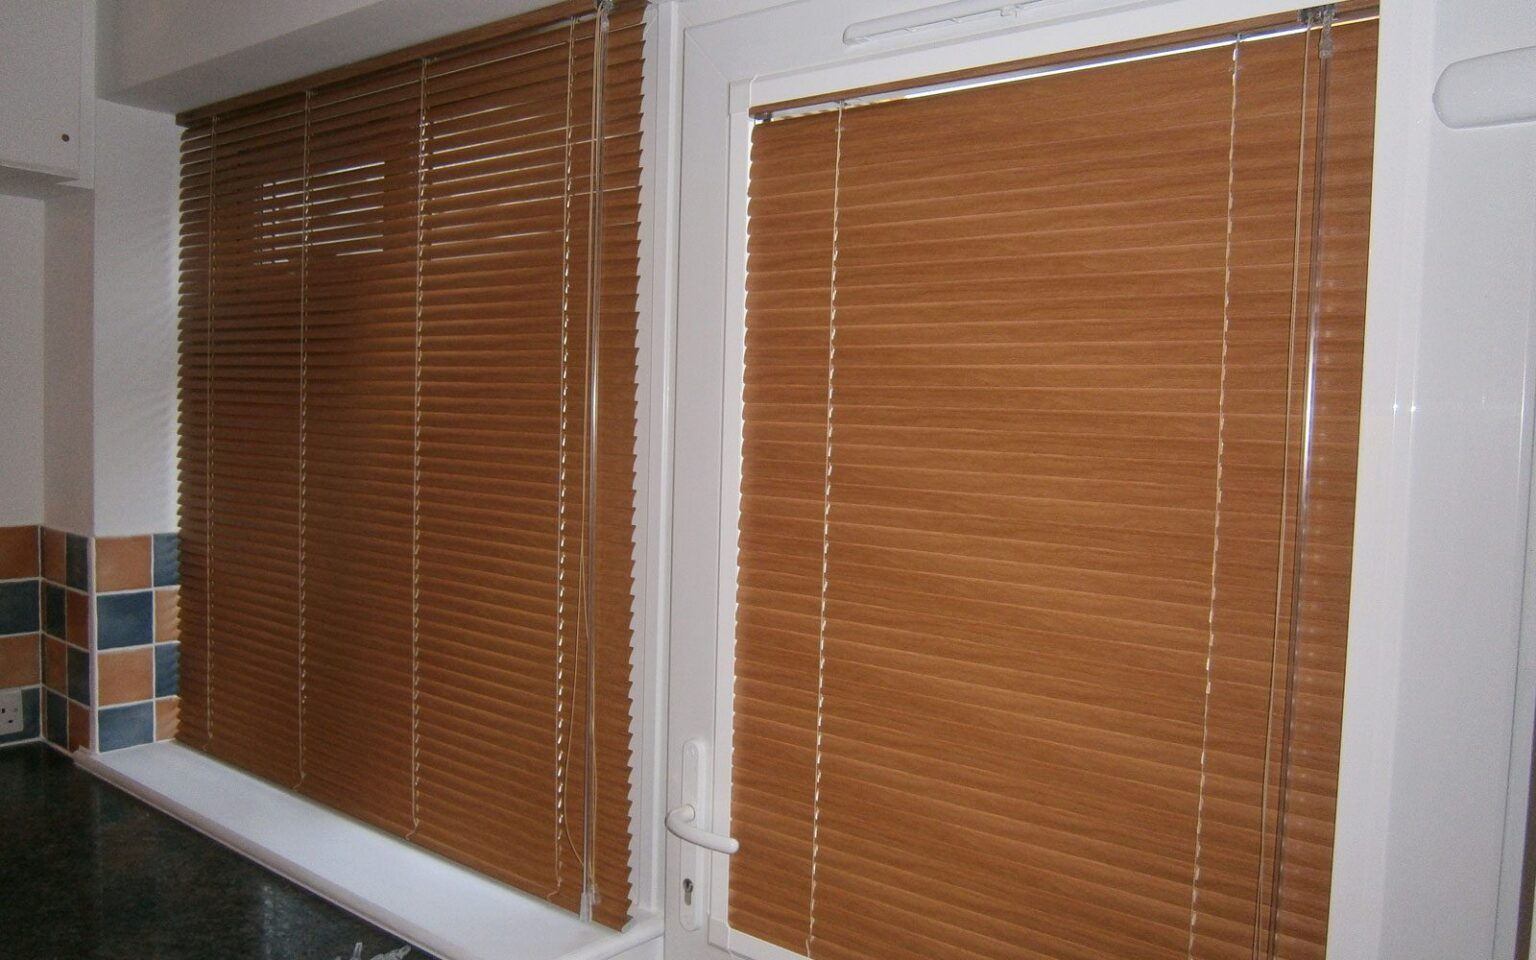 Wood-Effect-Aluminium-Venetian-Blinds-Matching-Perfect-Fit